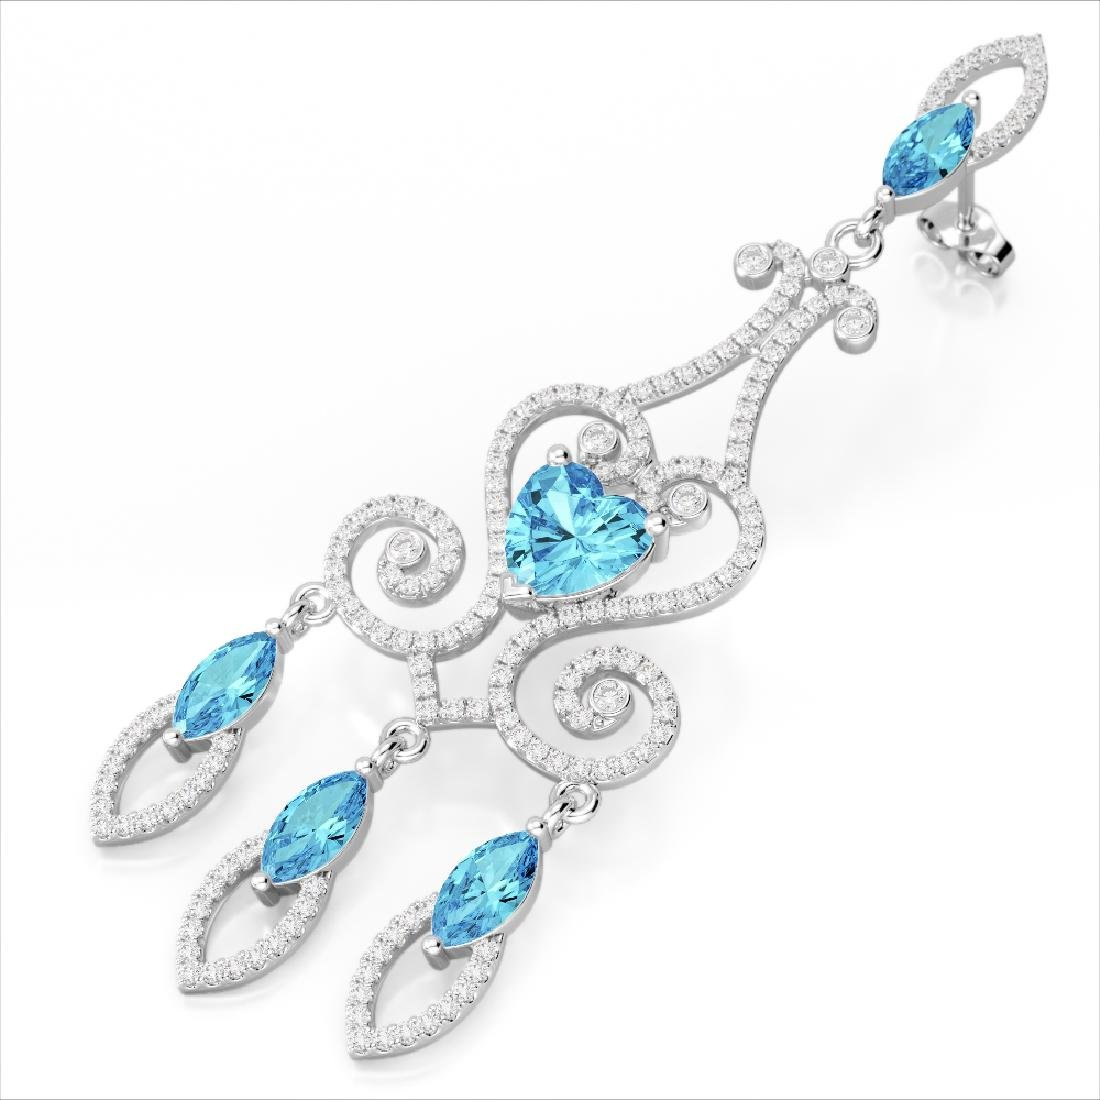 11 CTW Sky Topaz & Micro Pave VS/SI Diamond Earrings